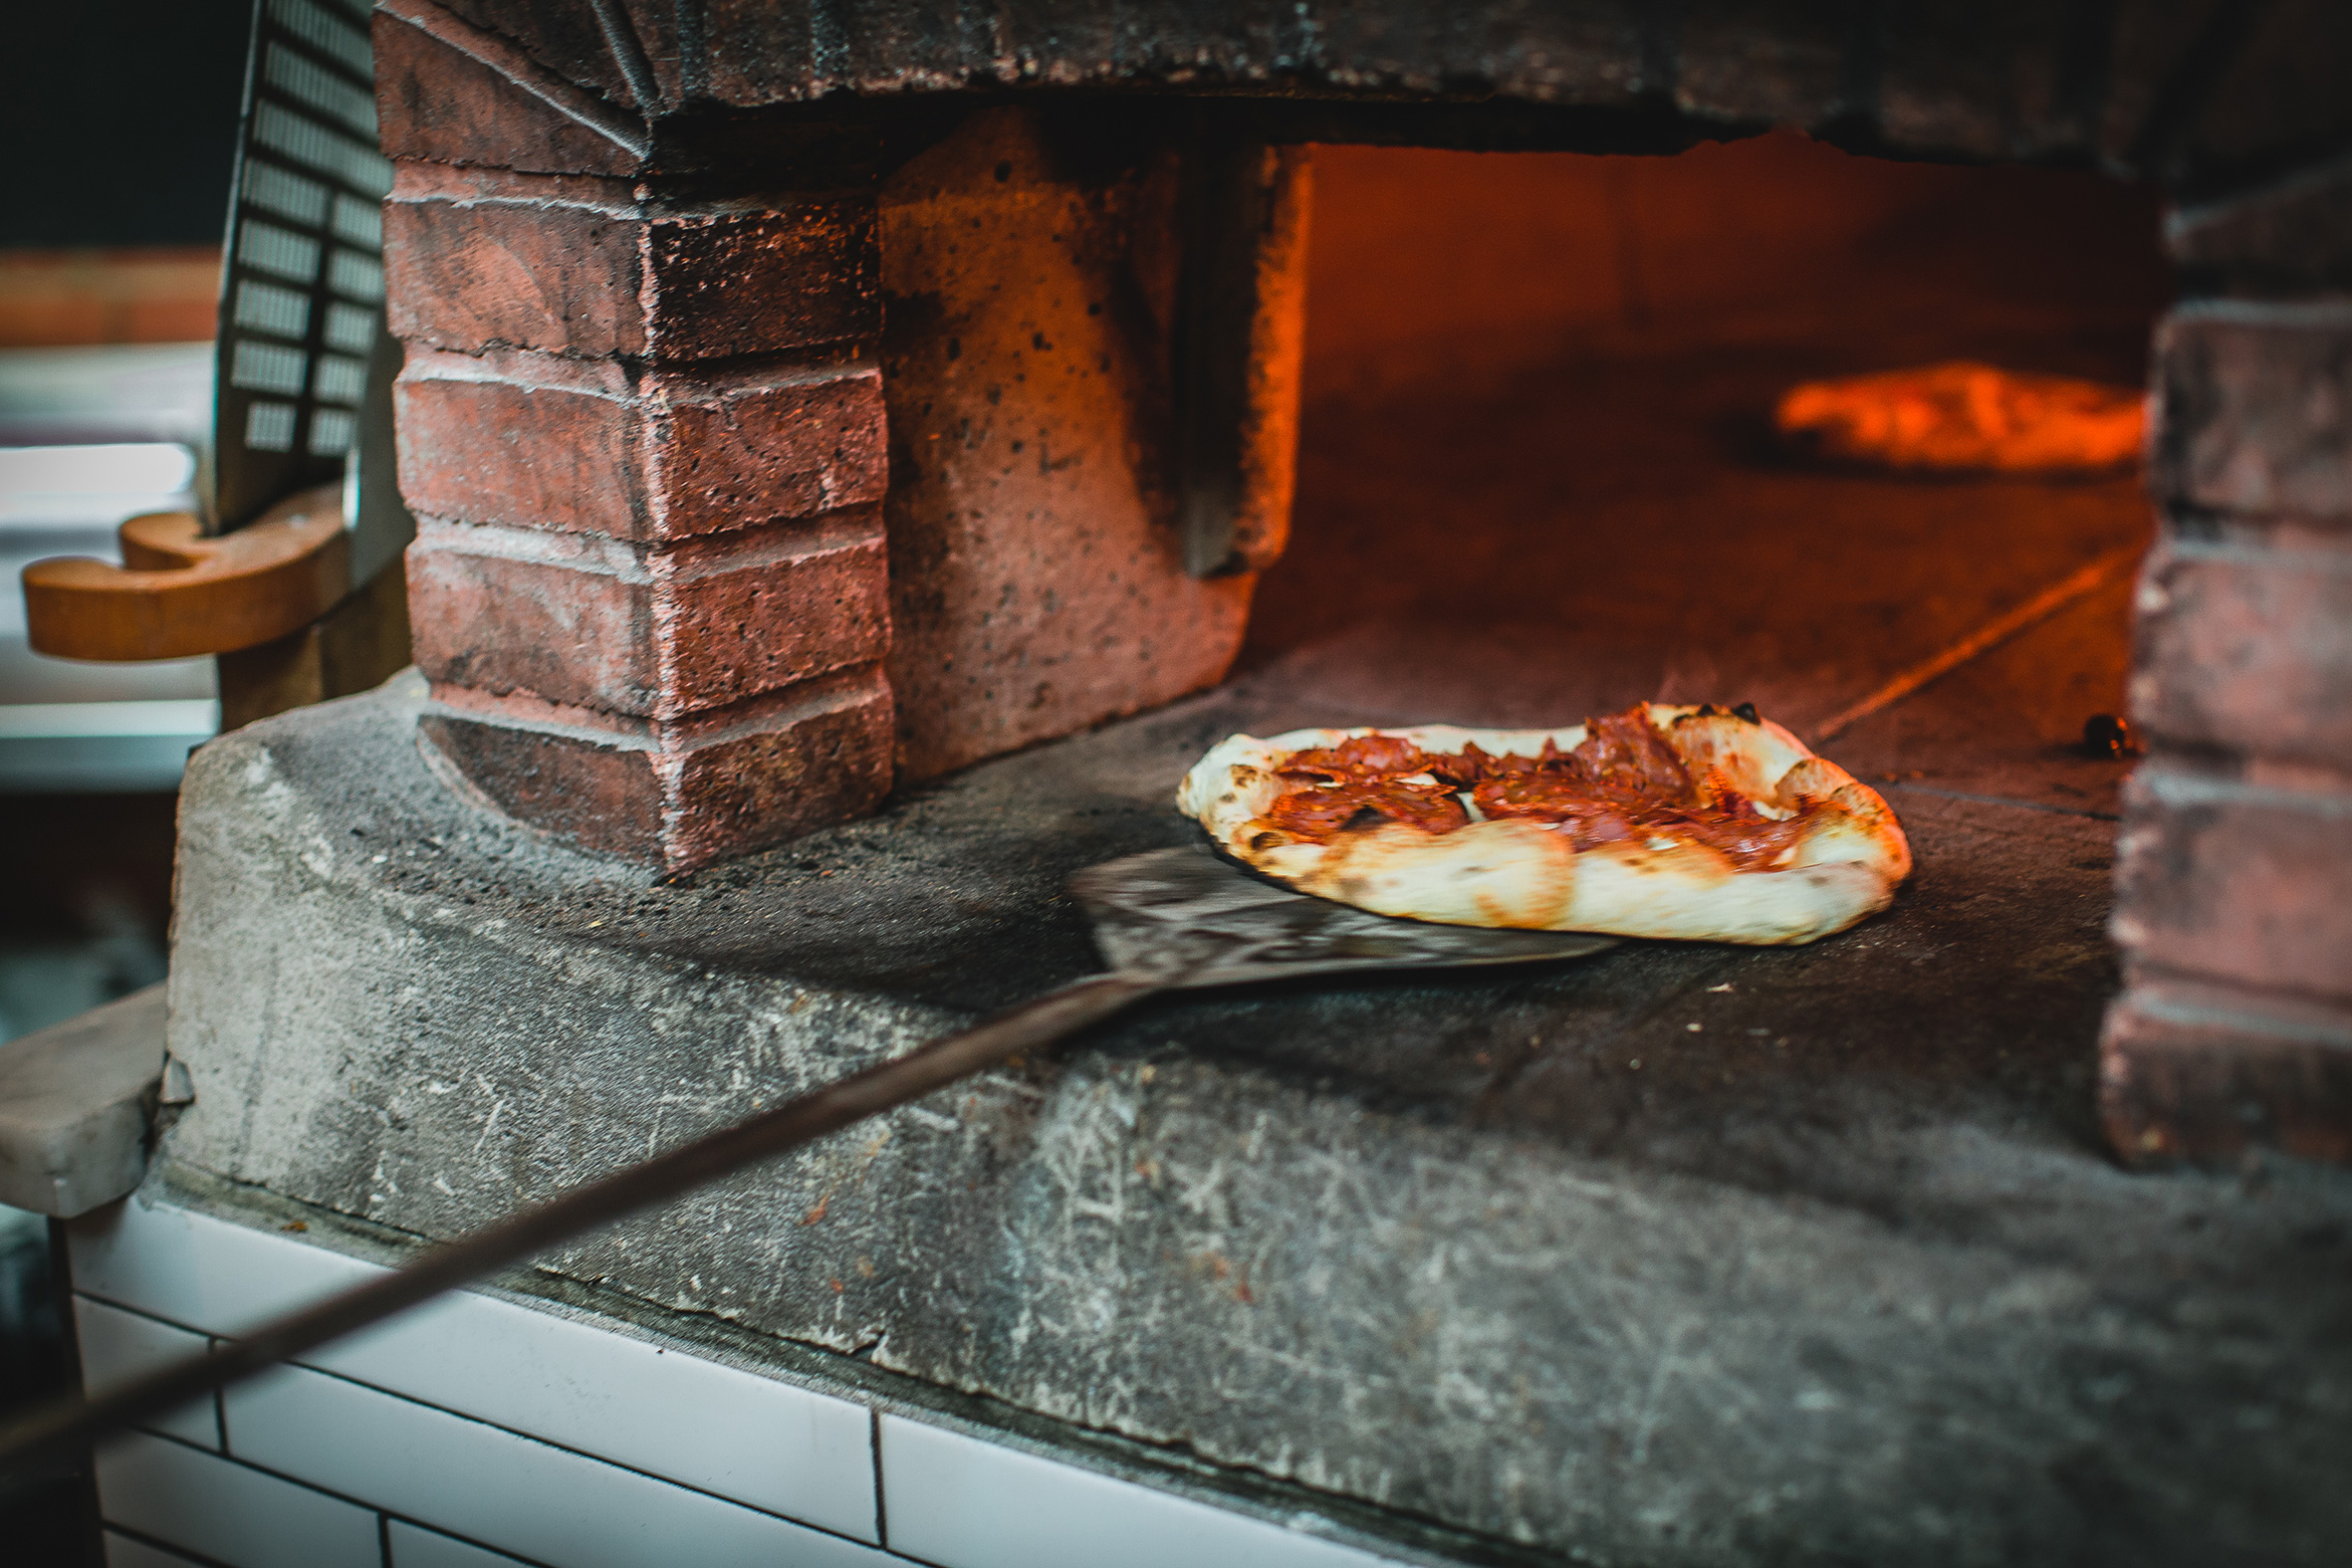 The-Epicurean_Pizza-Oven_Regional-Dining_Fresh-Local-Produce.jpg